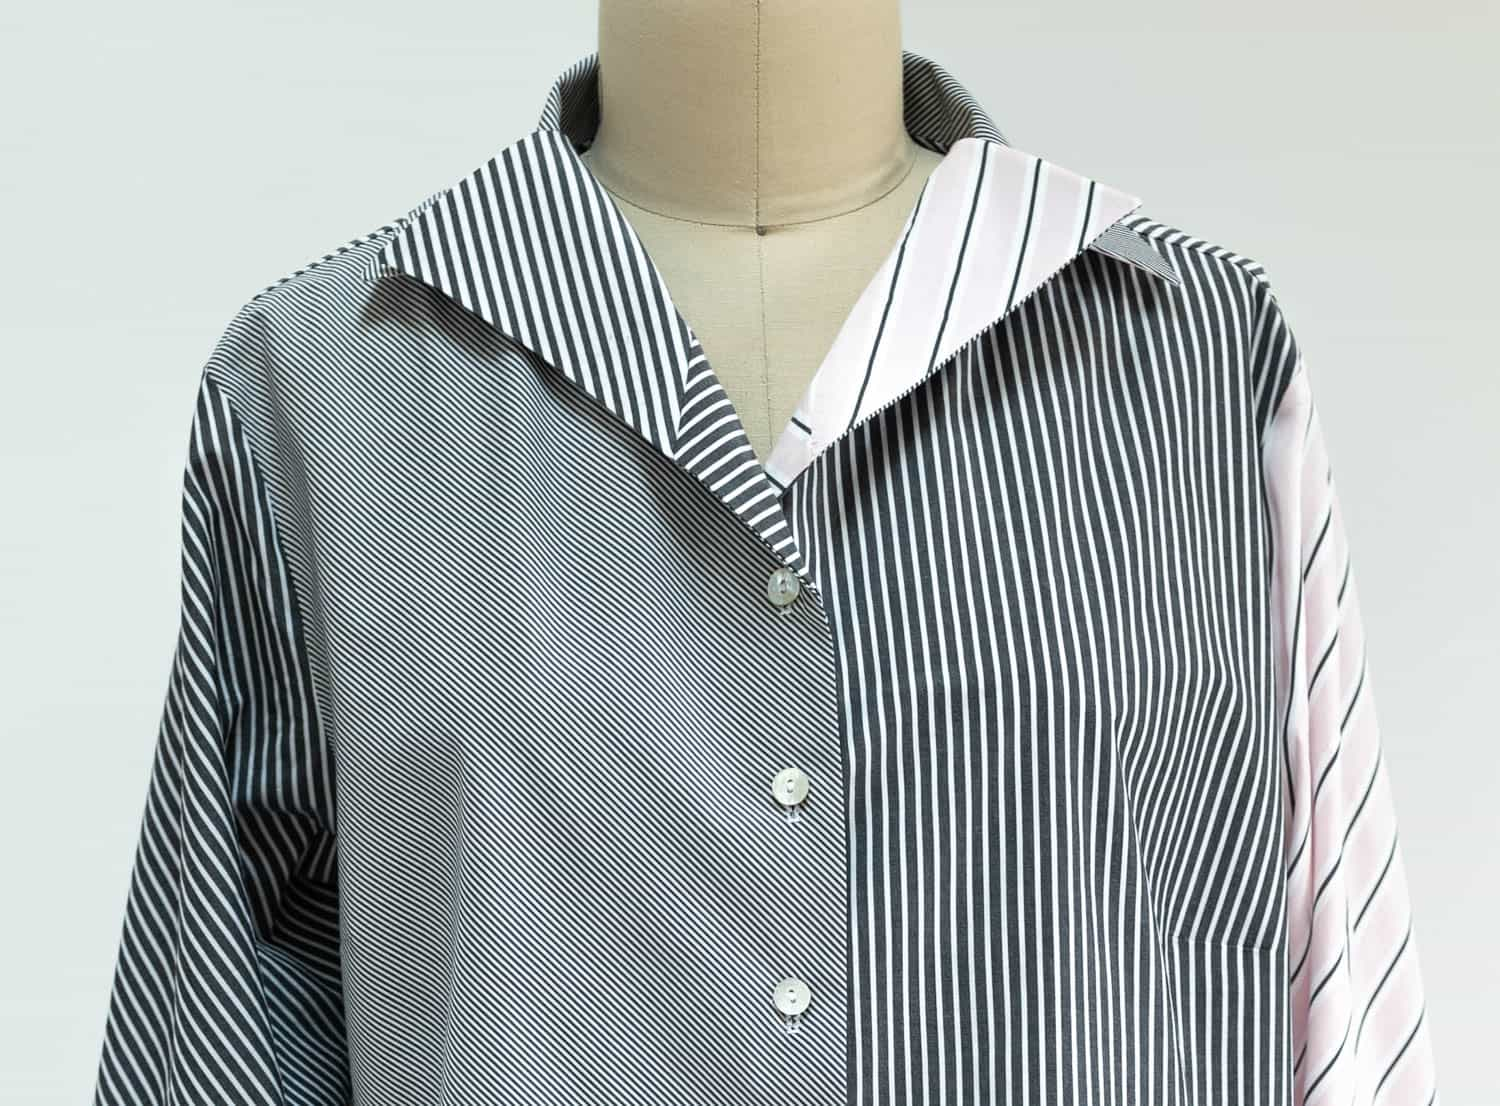 Katherine Tilton shows how to choose, combine and cut 3 different stripes in a shirt using Butterick 6521.